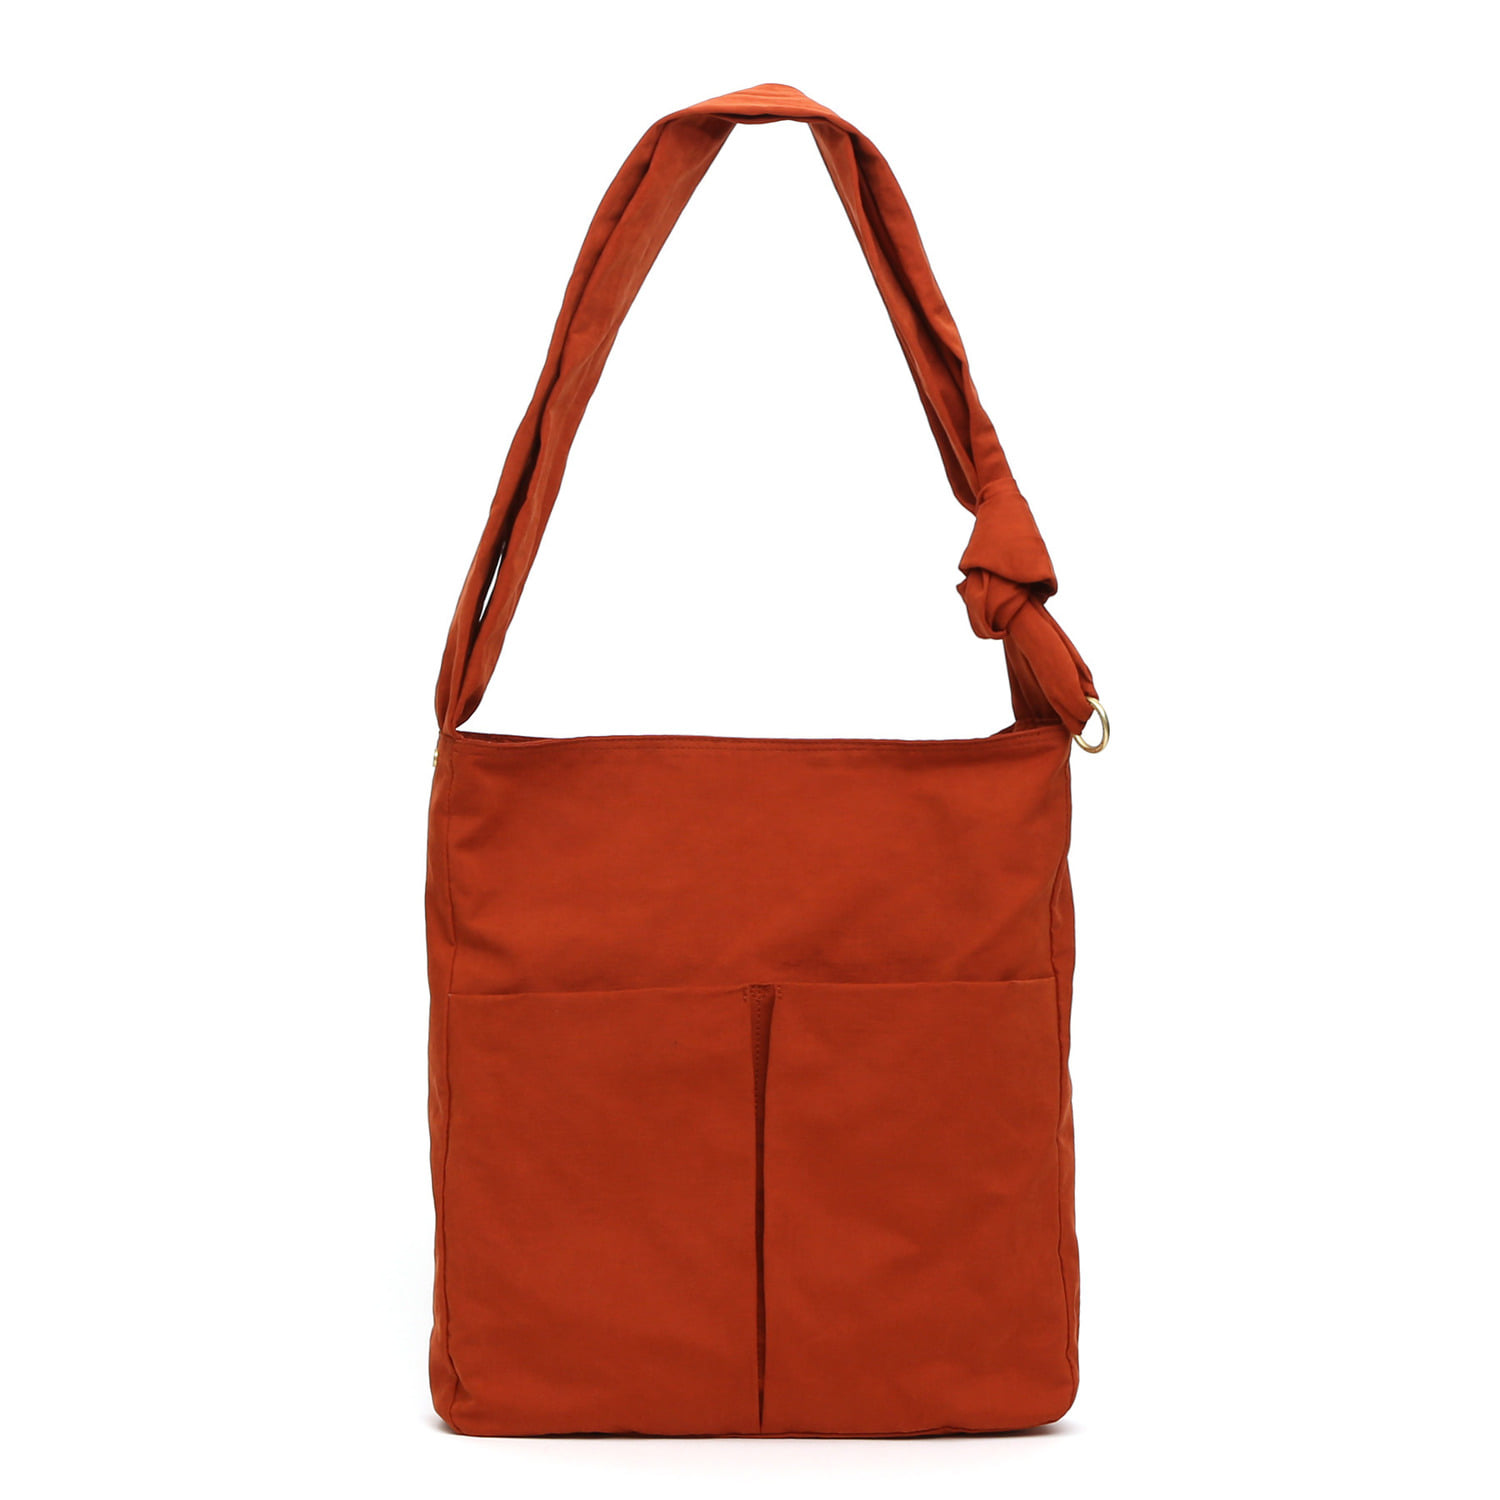 SQUARE BAG / WRINKLE / NPC / BRICK ORANGE